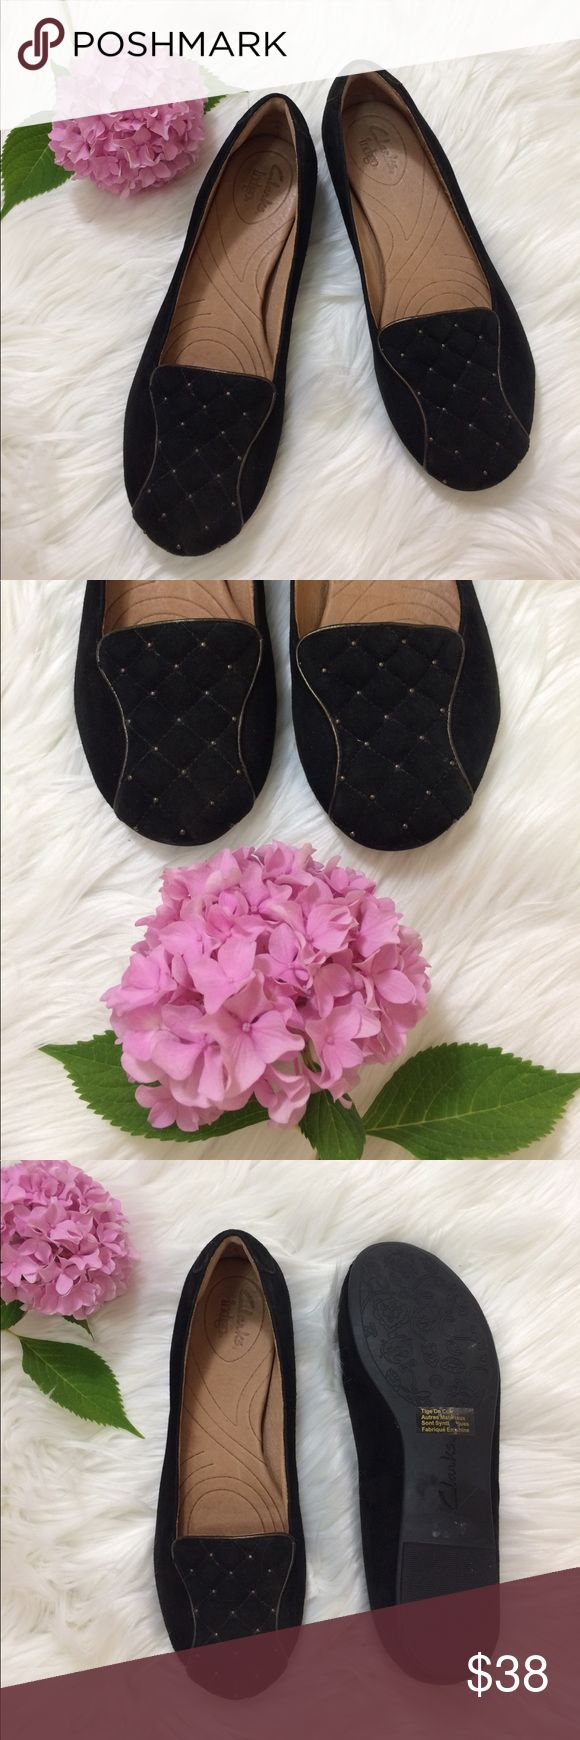 Clarks Indigo // Leather Loafer with Quilted Toe Clarks Indigo // Leather Loafer with Quilted Toe. Black with bronze accents. Like new; still has sticker on soles. Leather upper. Soft exterior. Size 8 -- true to size. 🌷🌷🌷Item will be removed 8/24 -- get it before it's gone (offers accepted) 🌷🌷🌷🌷 Clarks Shoes Flats & Loafers